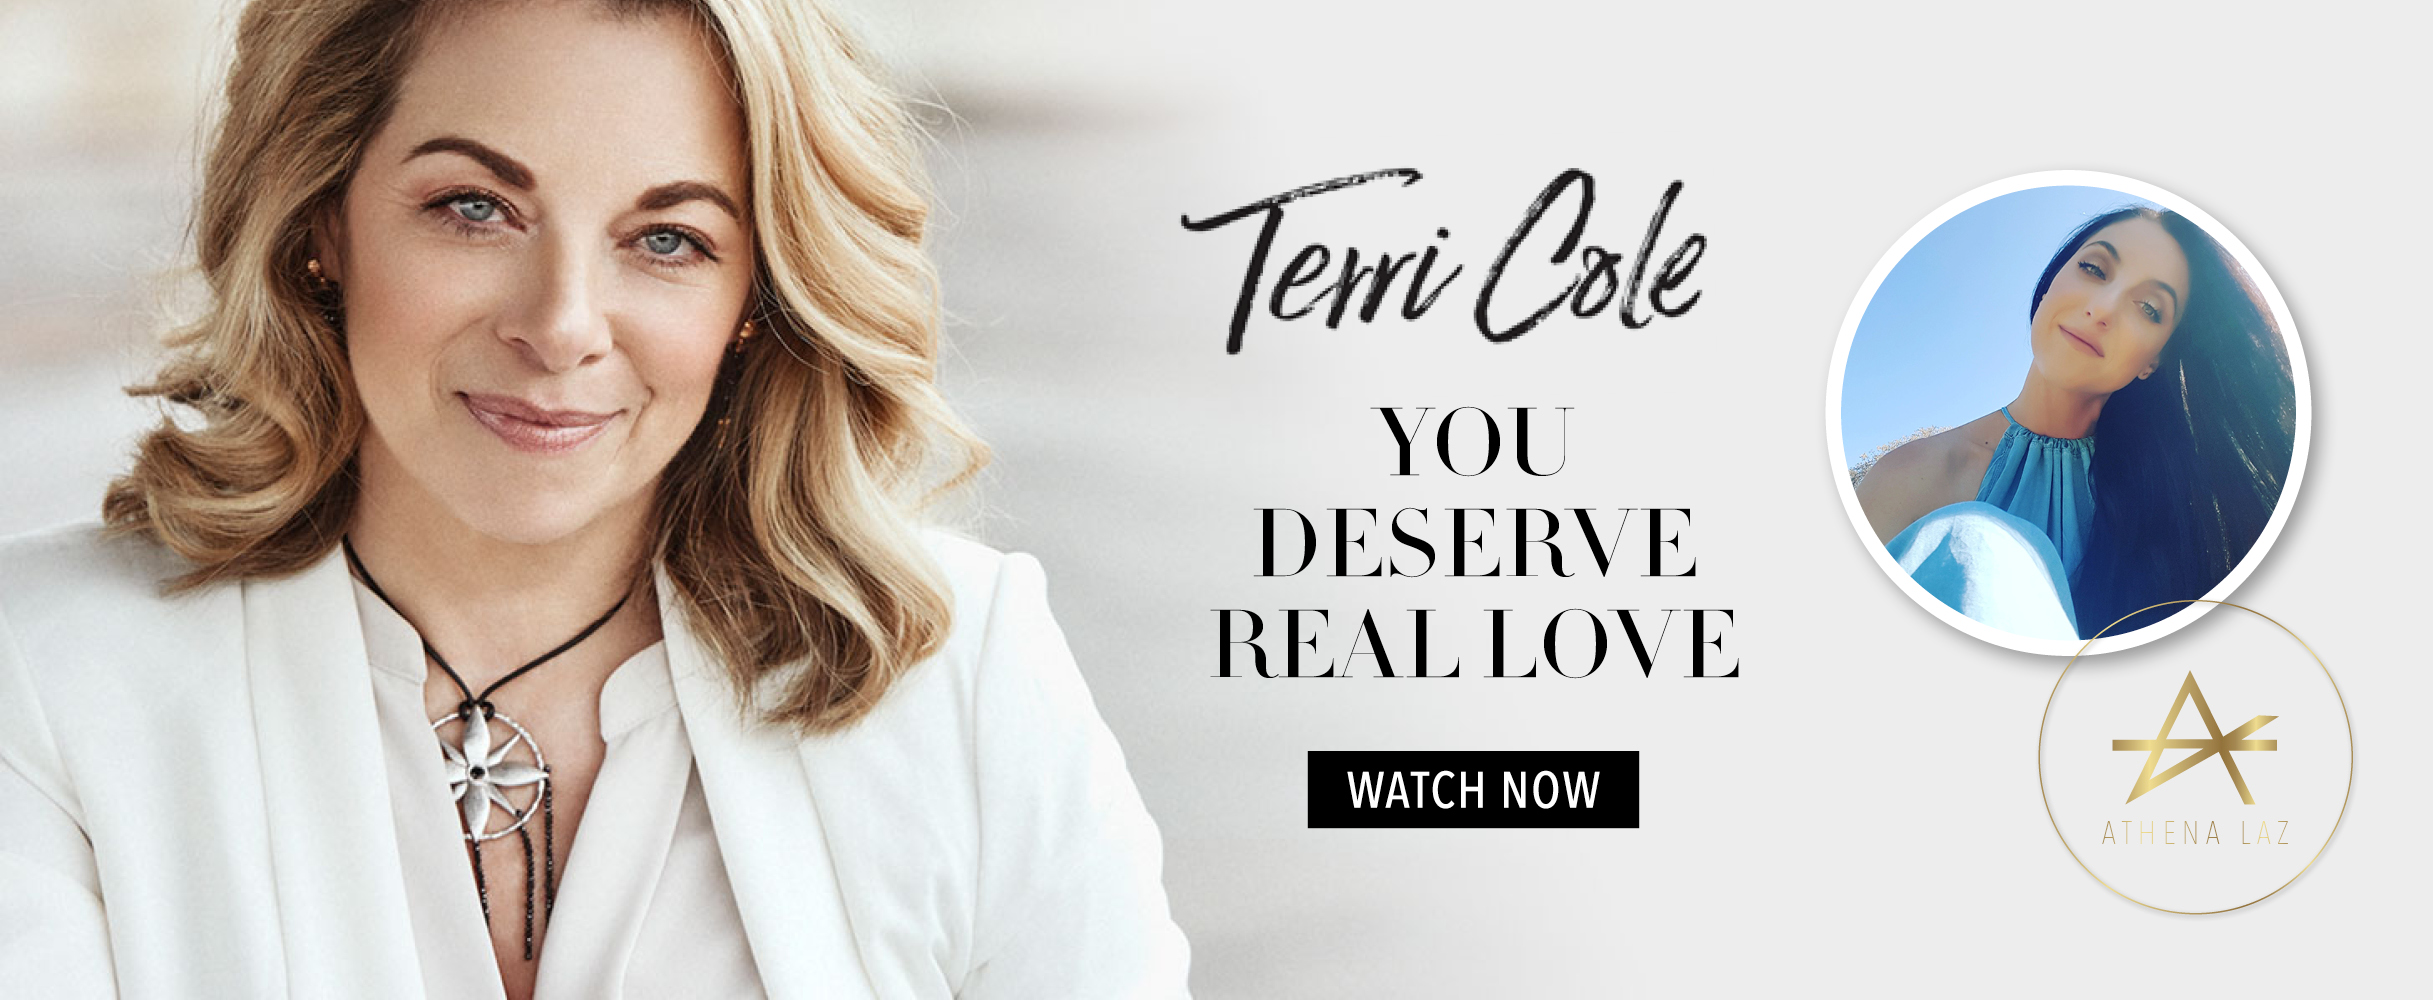 Athena Laz interviews Terri Cole on her Real Love Revolution